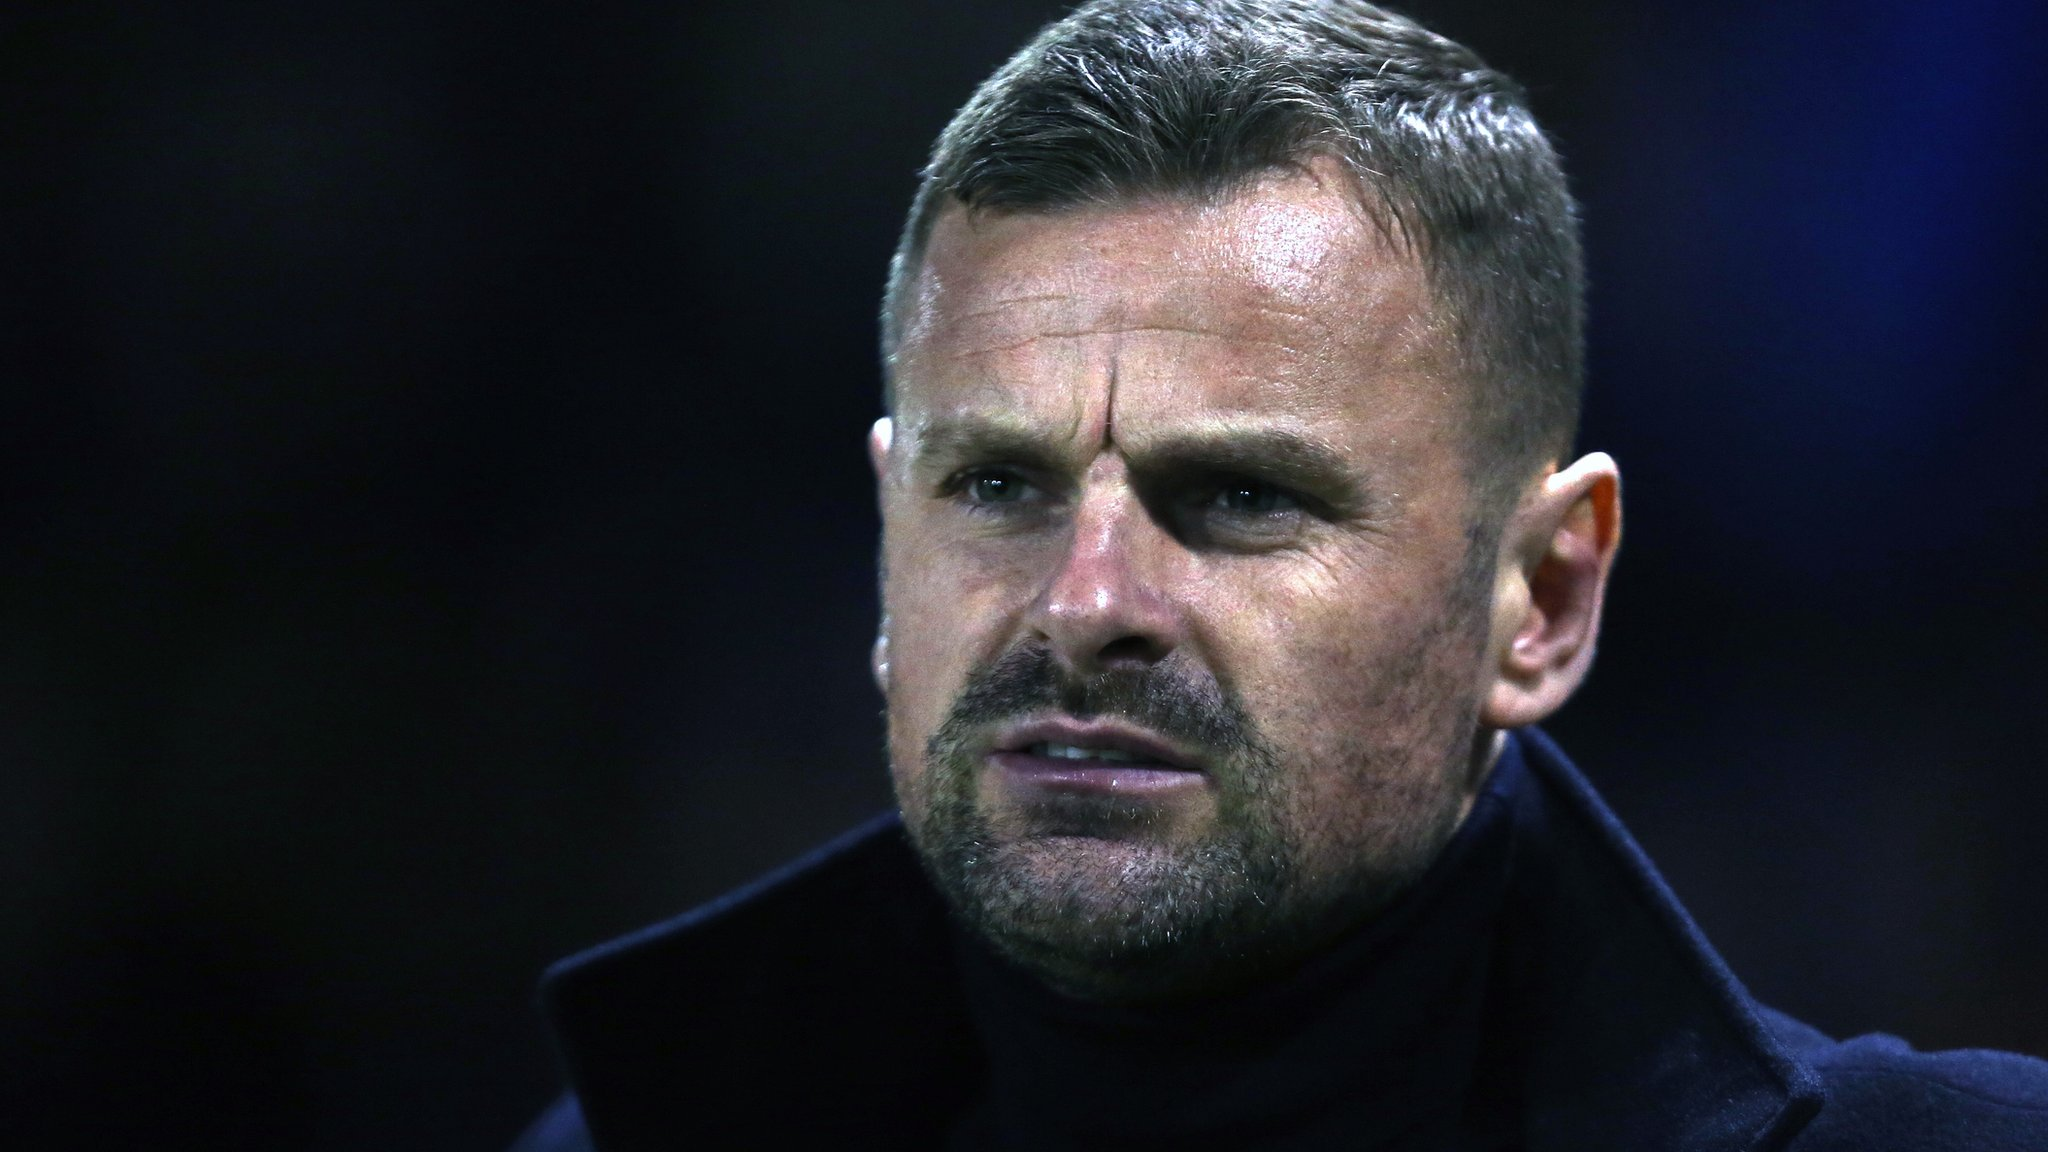 Richie Wellens: New Swindon Town manager reacted 'like lottery winner' to job